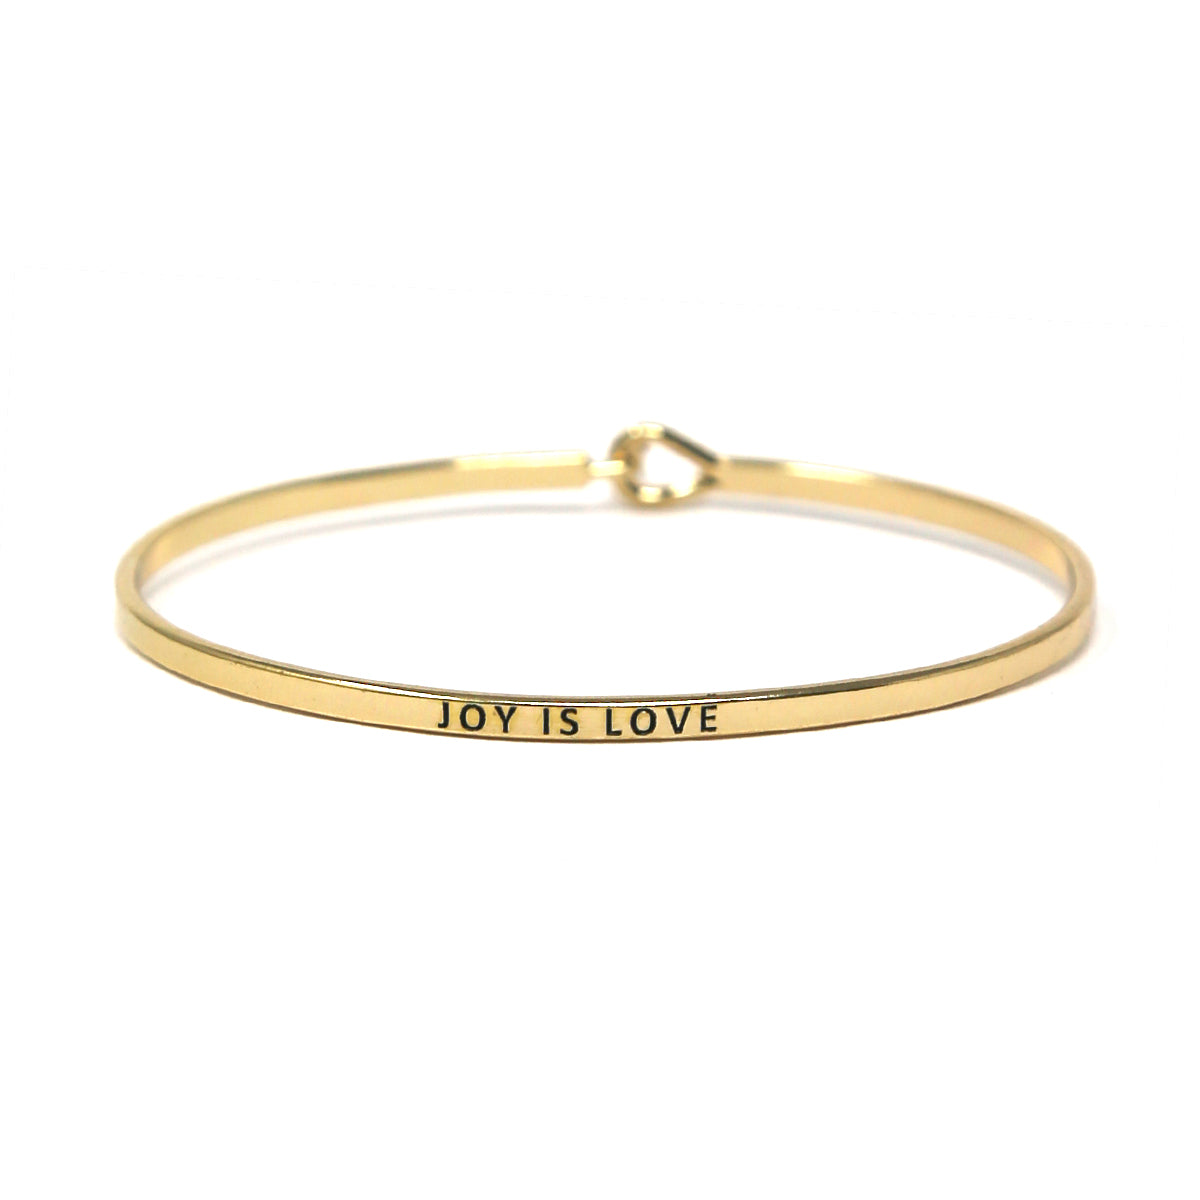 JOY IS LOVE Inspirational Message Bracelet